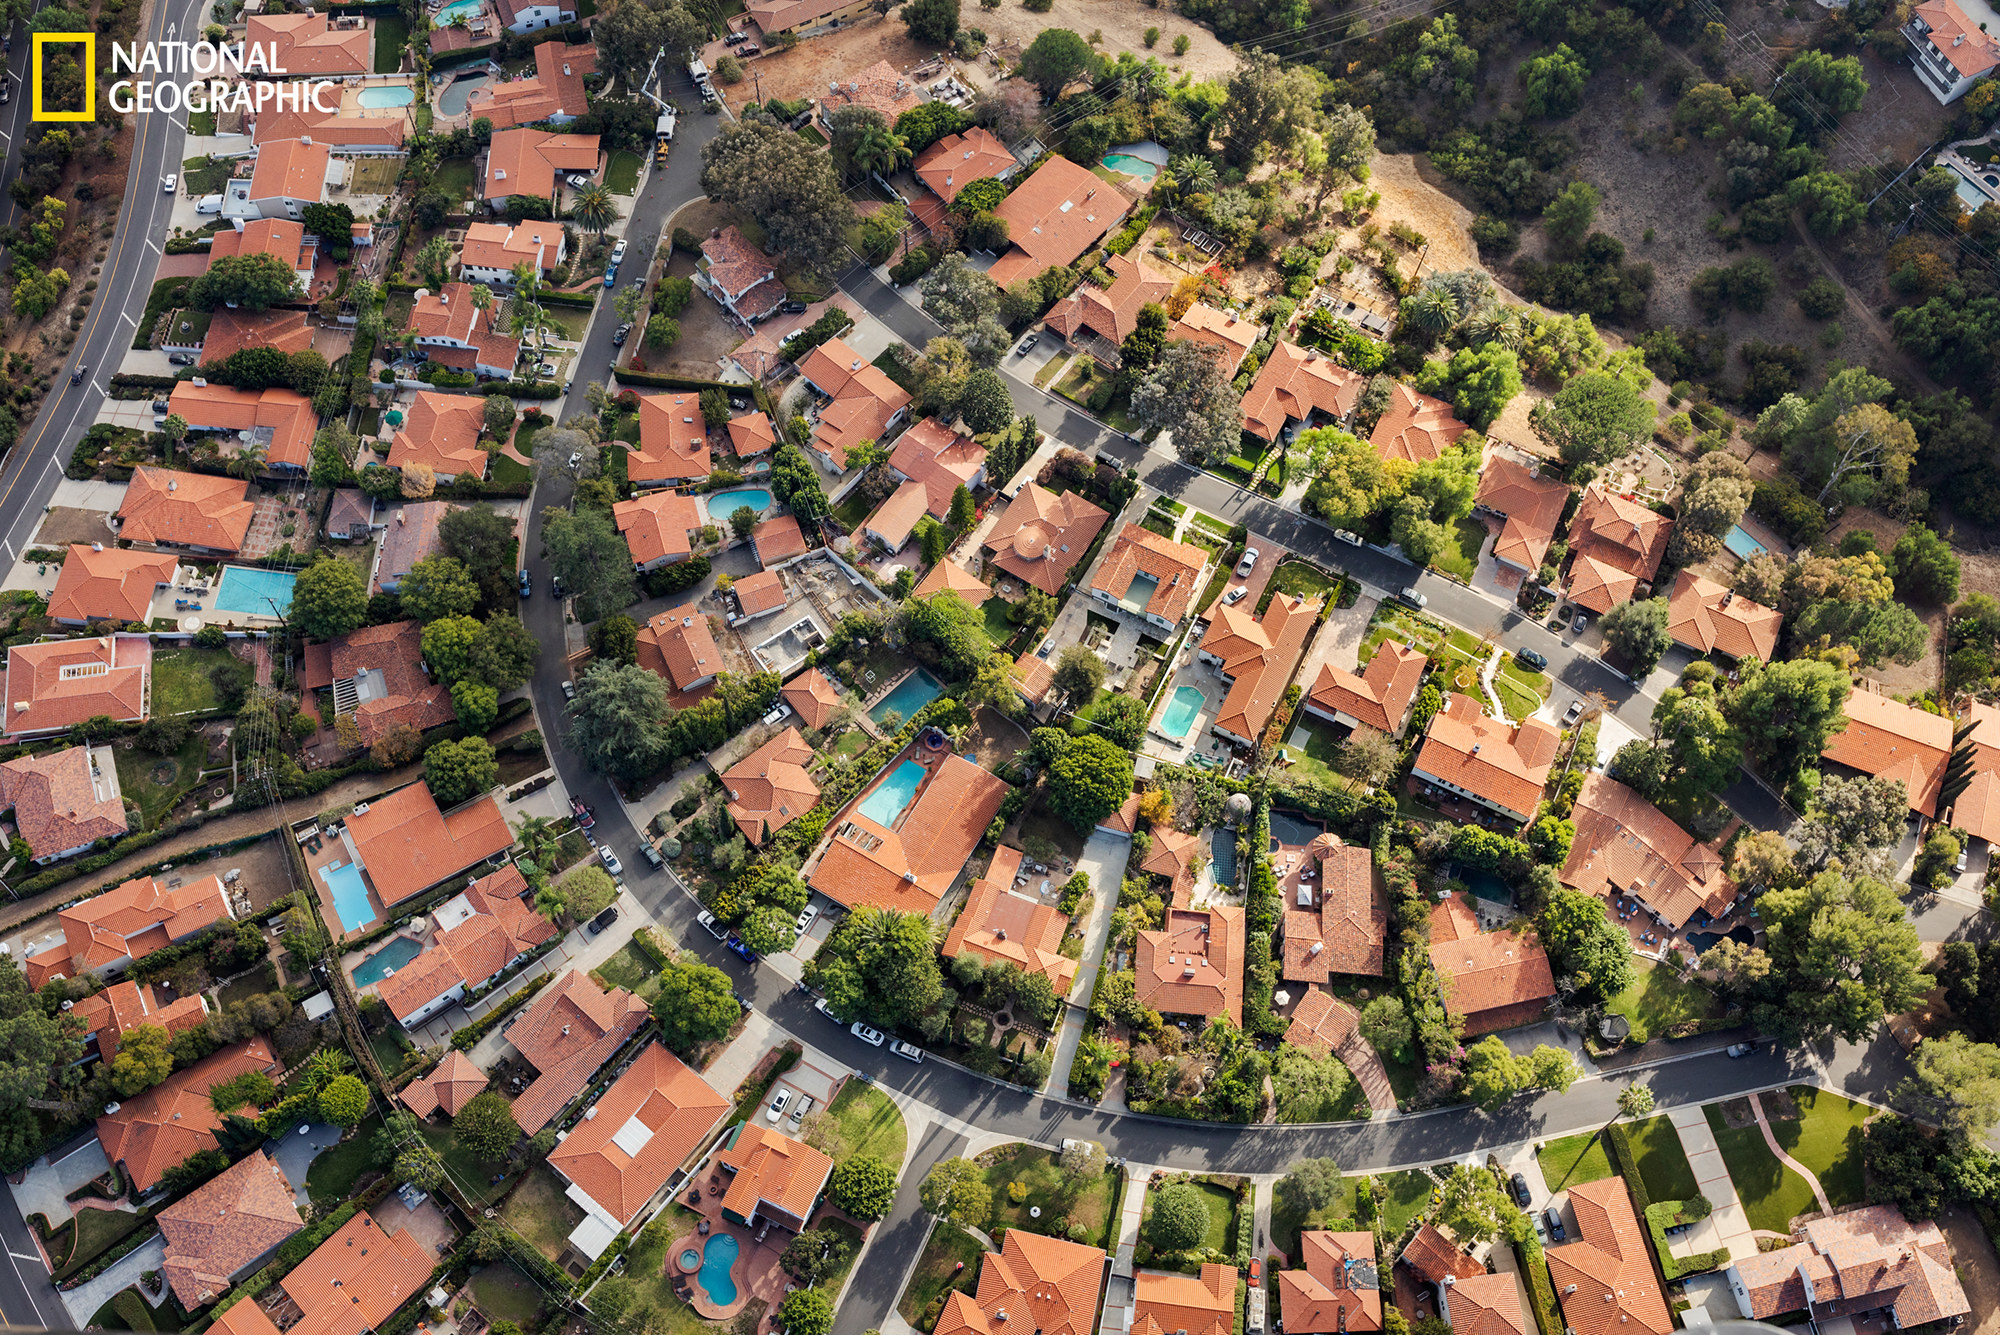 Aerial view of mansions in a tree-lined neighborhood